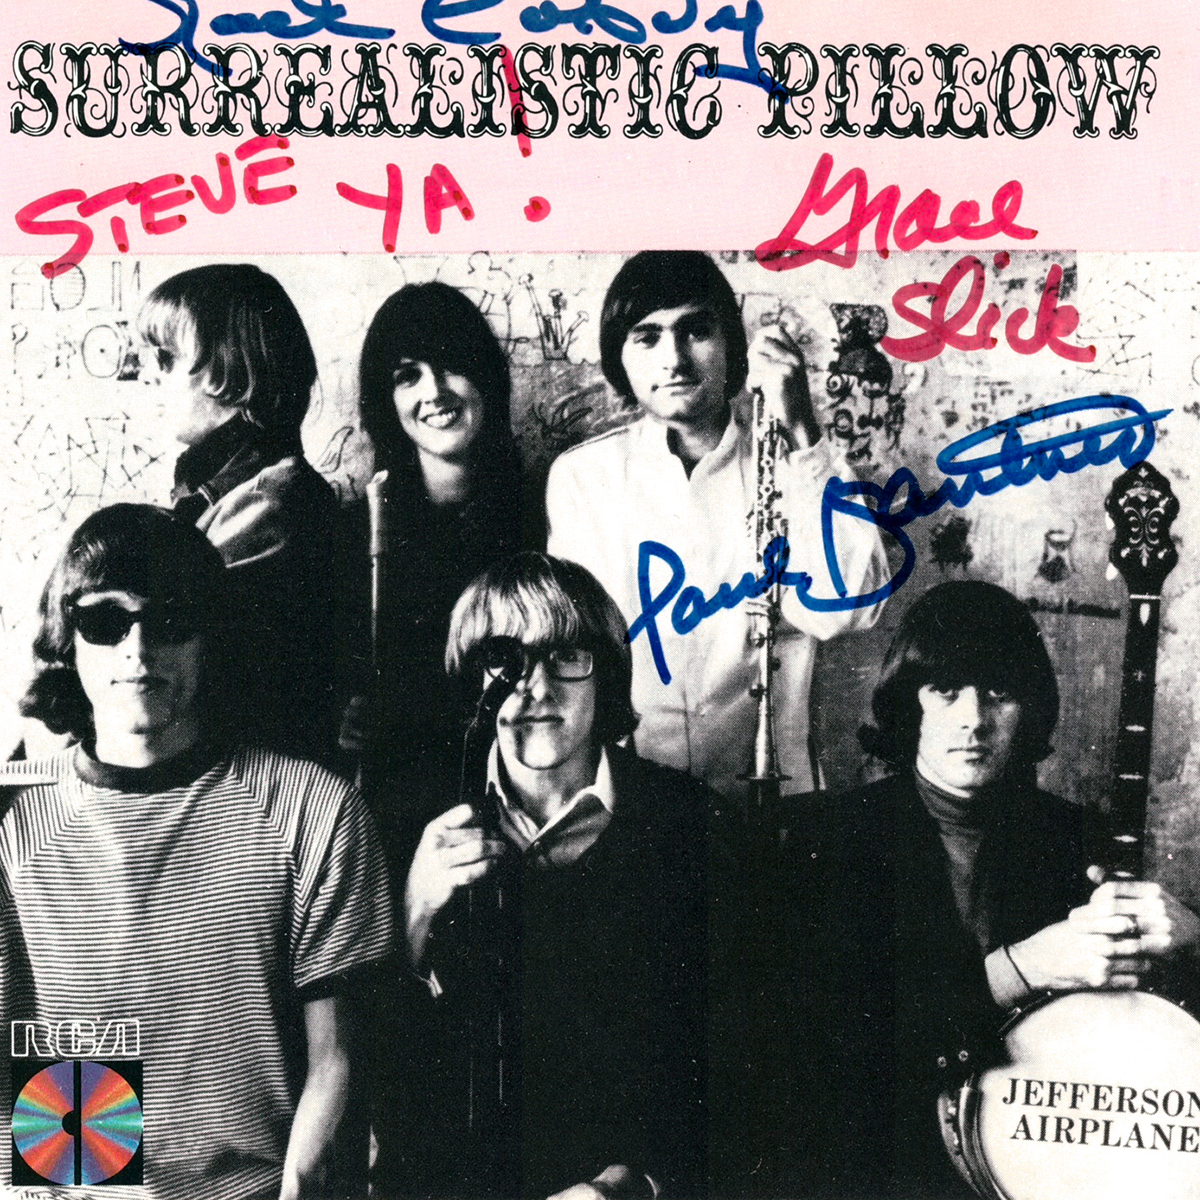 CD Cover - Surrealistic Pillow